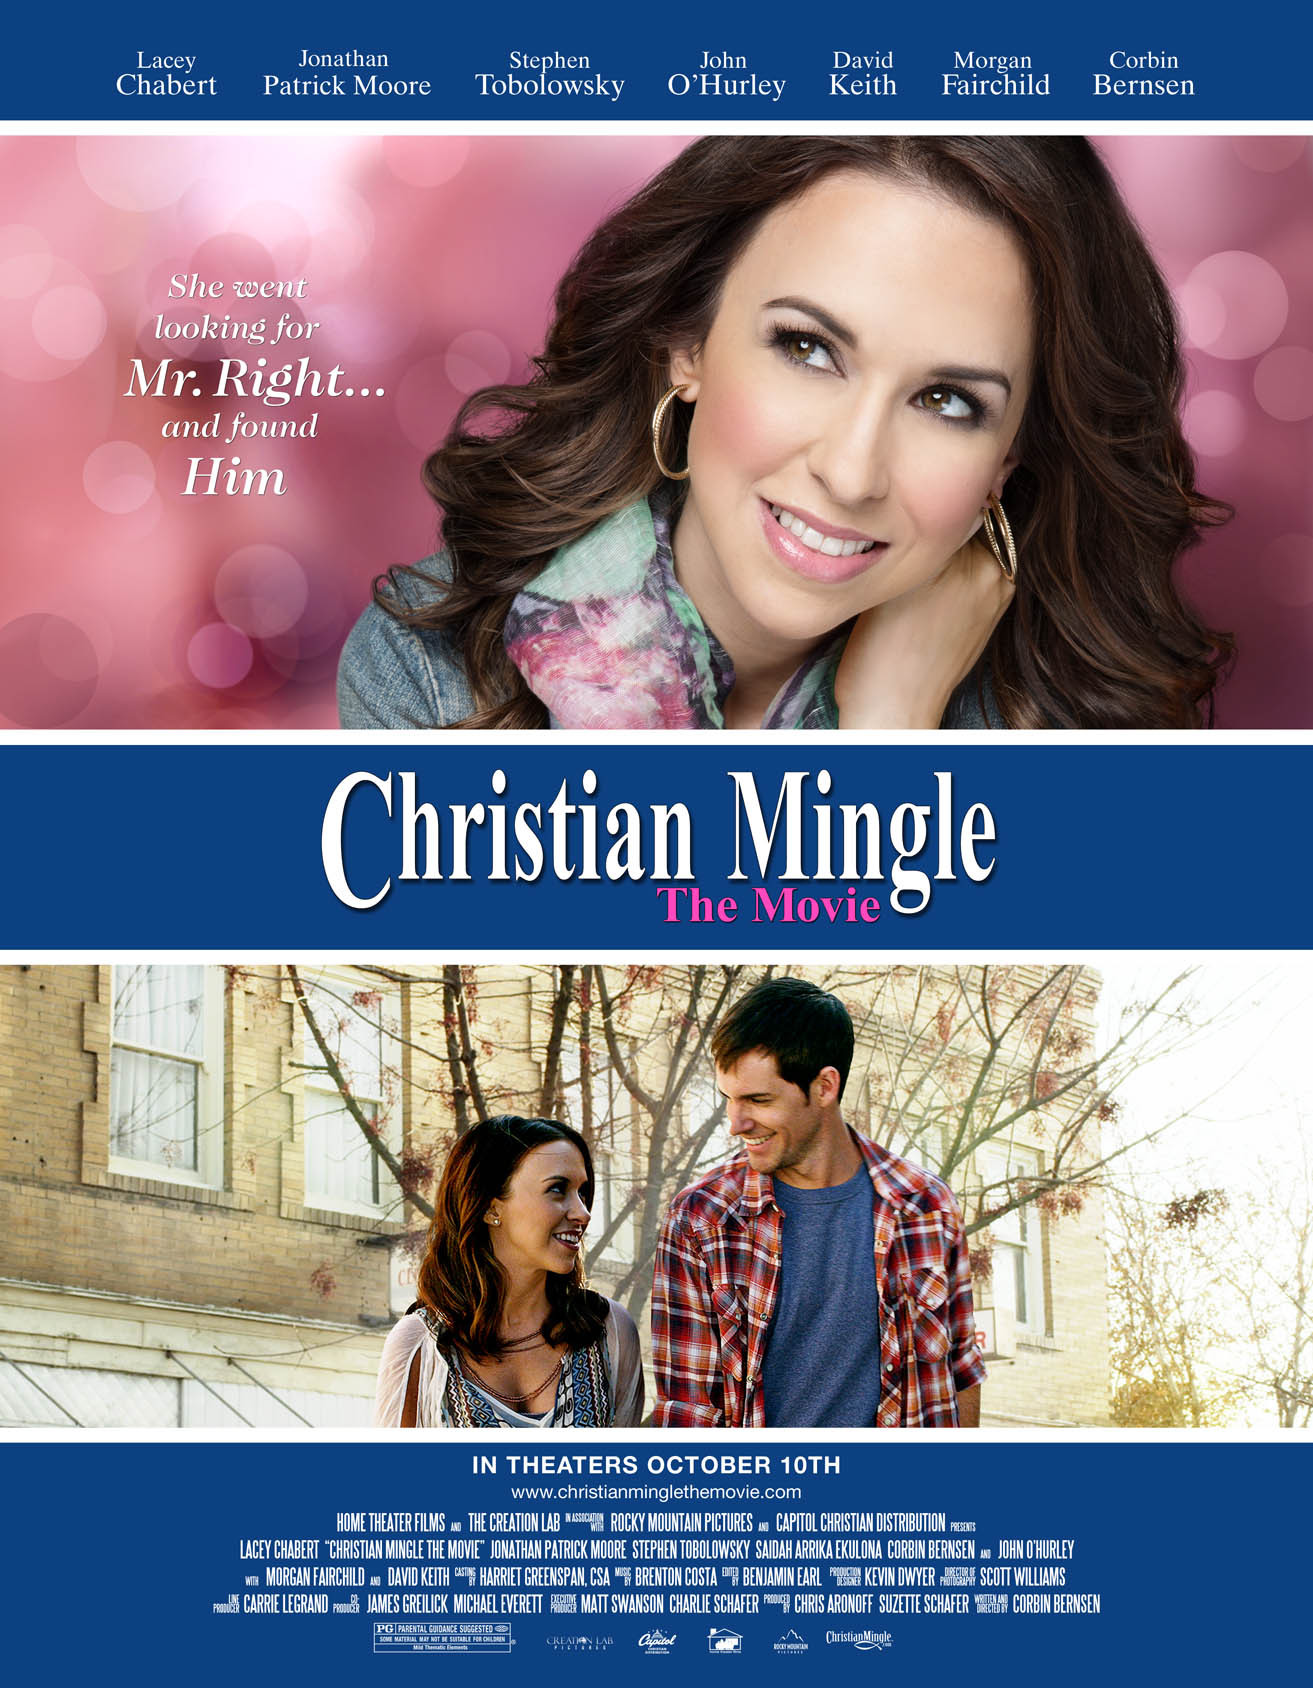 Christian mingle rates